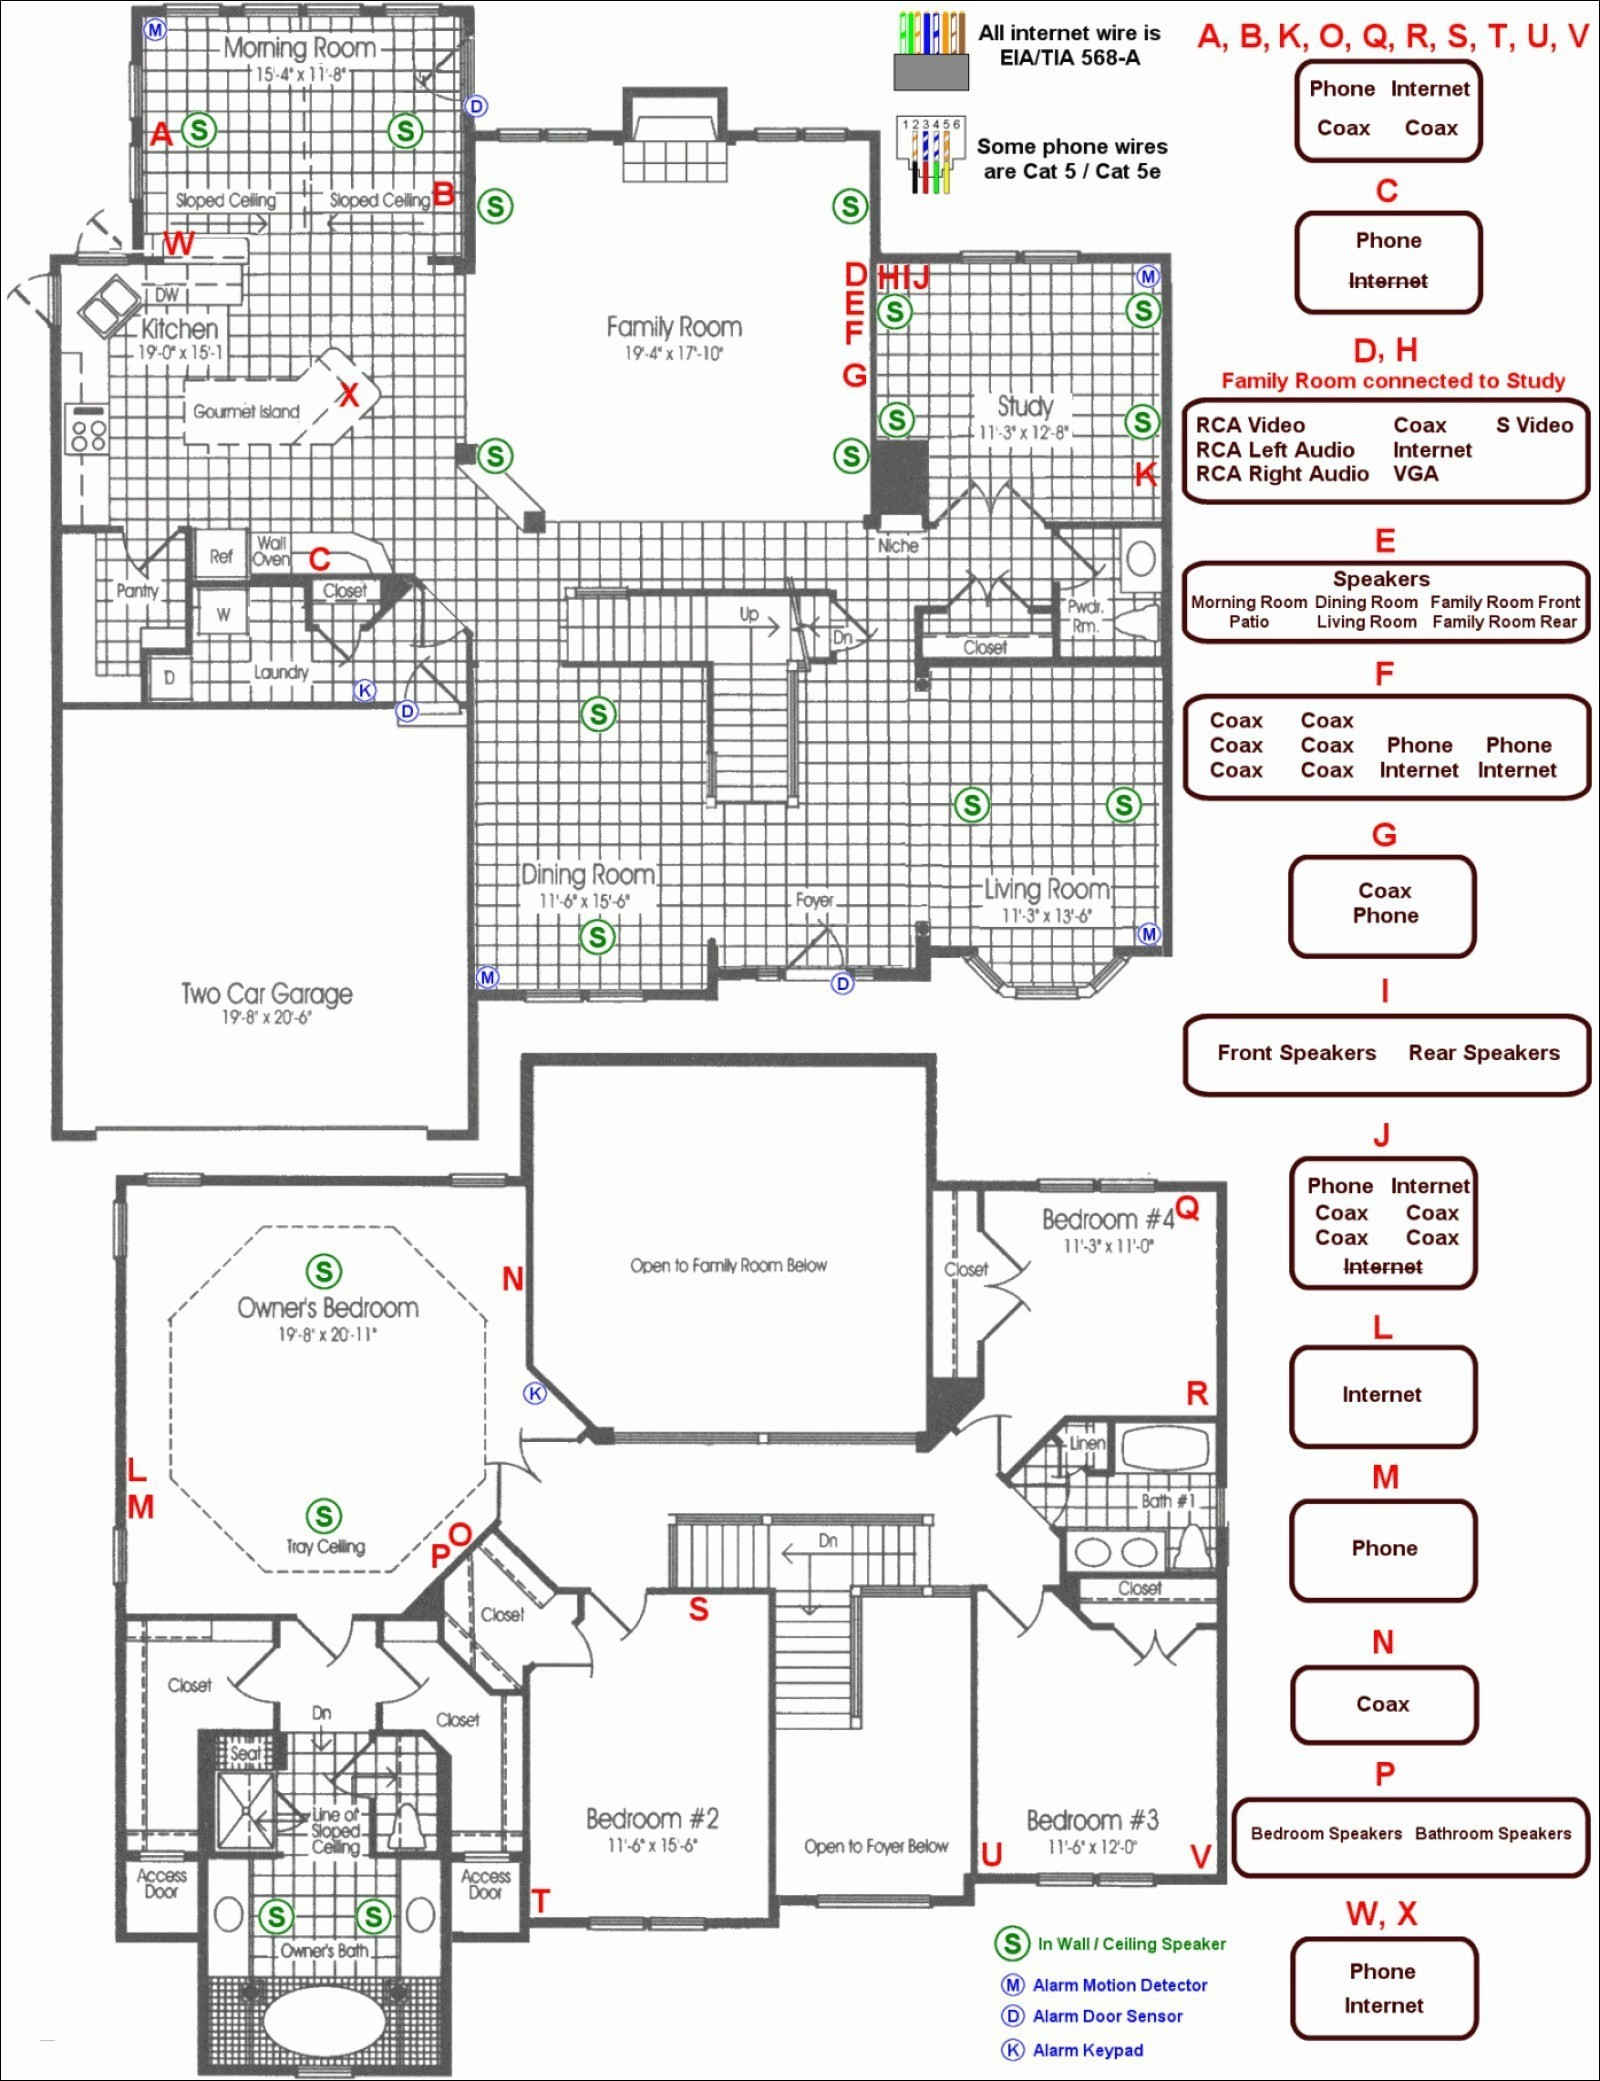 Wiring Diagram A Light Switch Simple Wiring Diagram to Relay New Supreme Light Switch Wiring